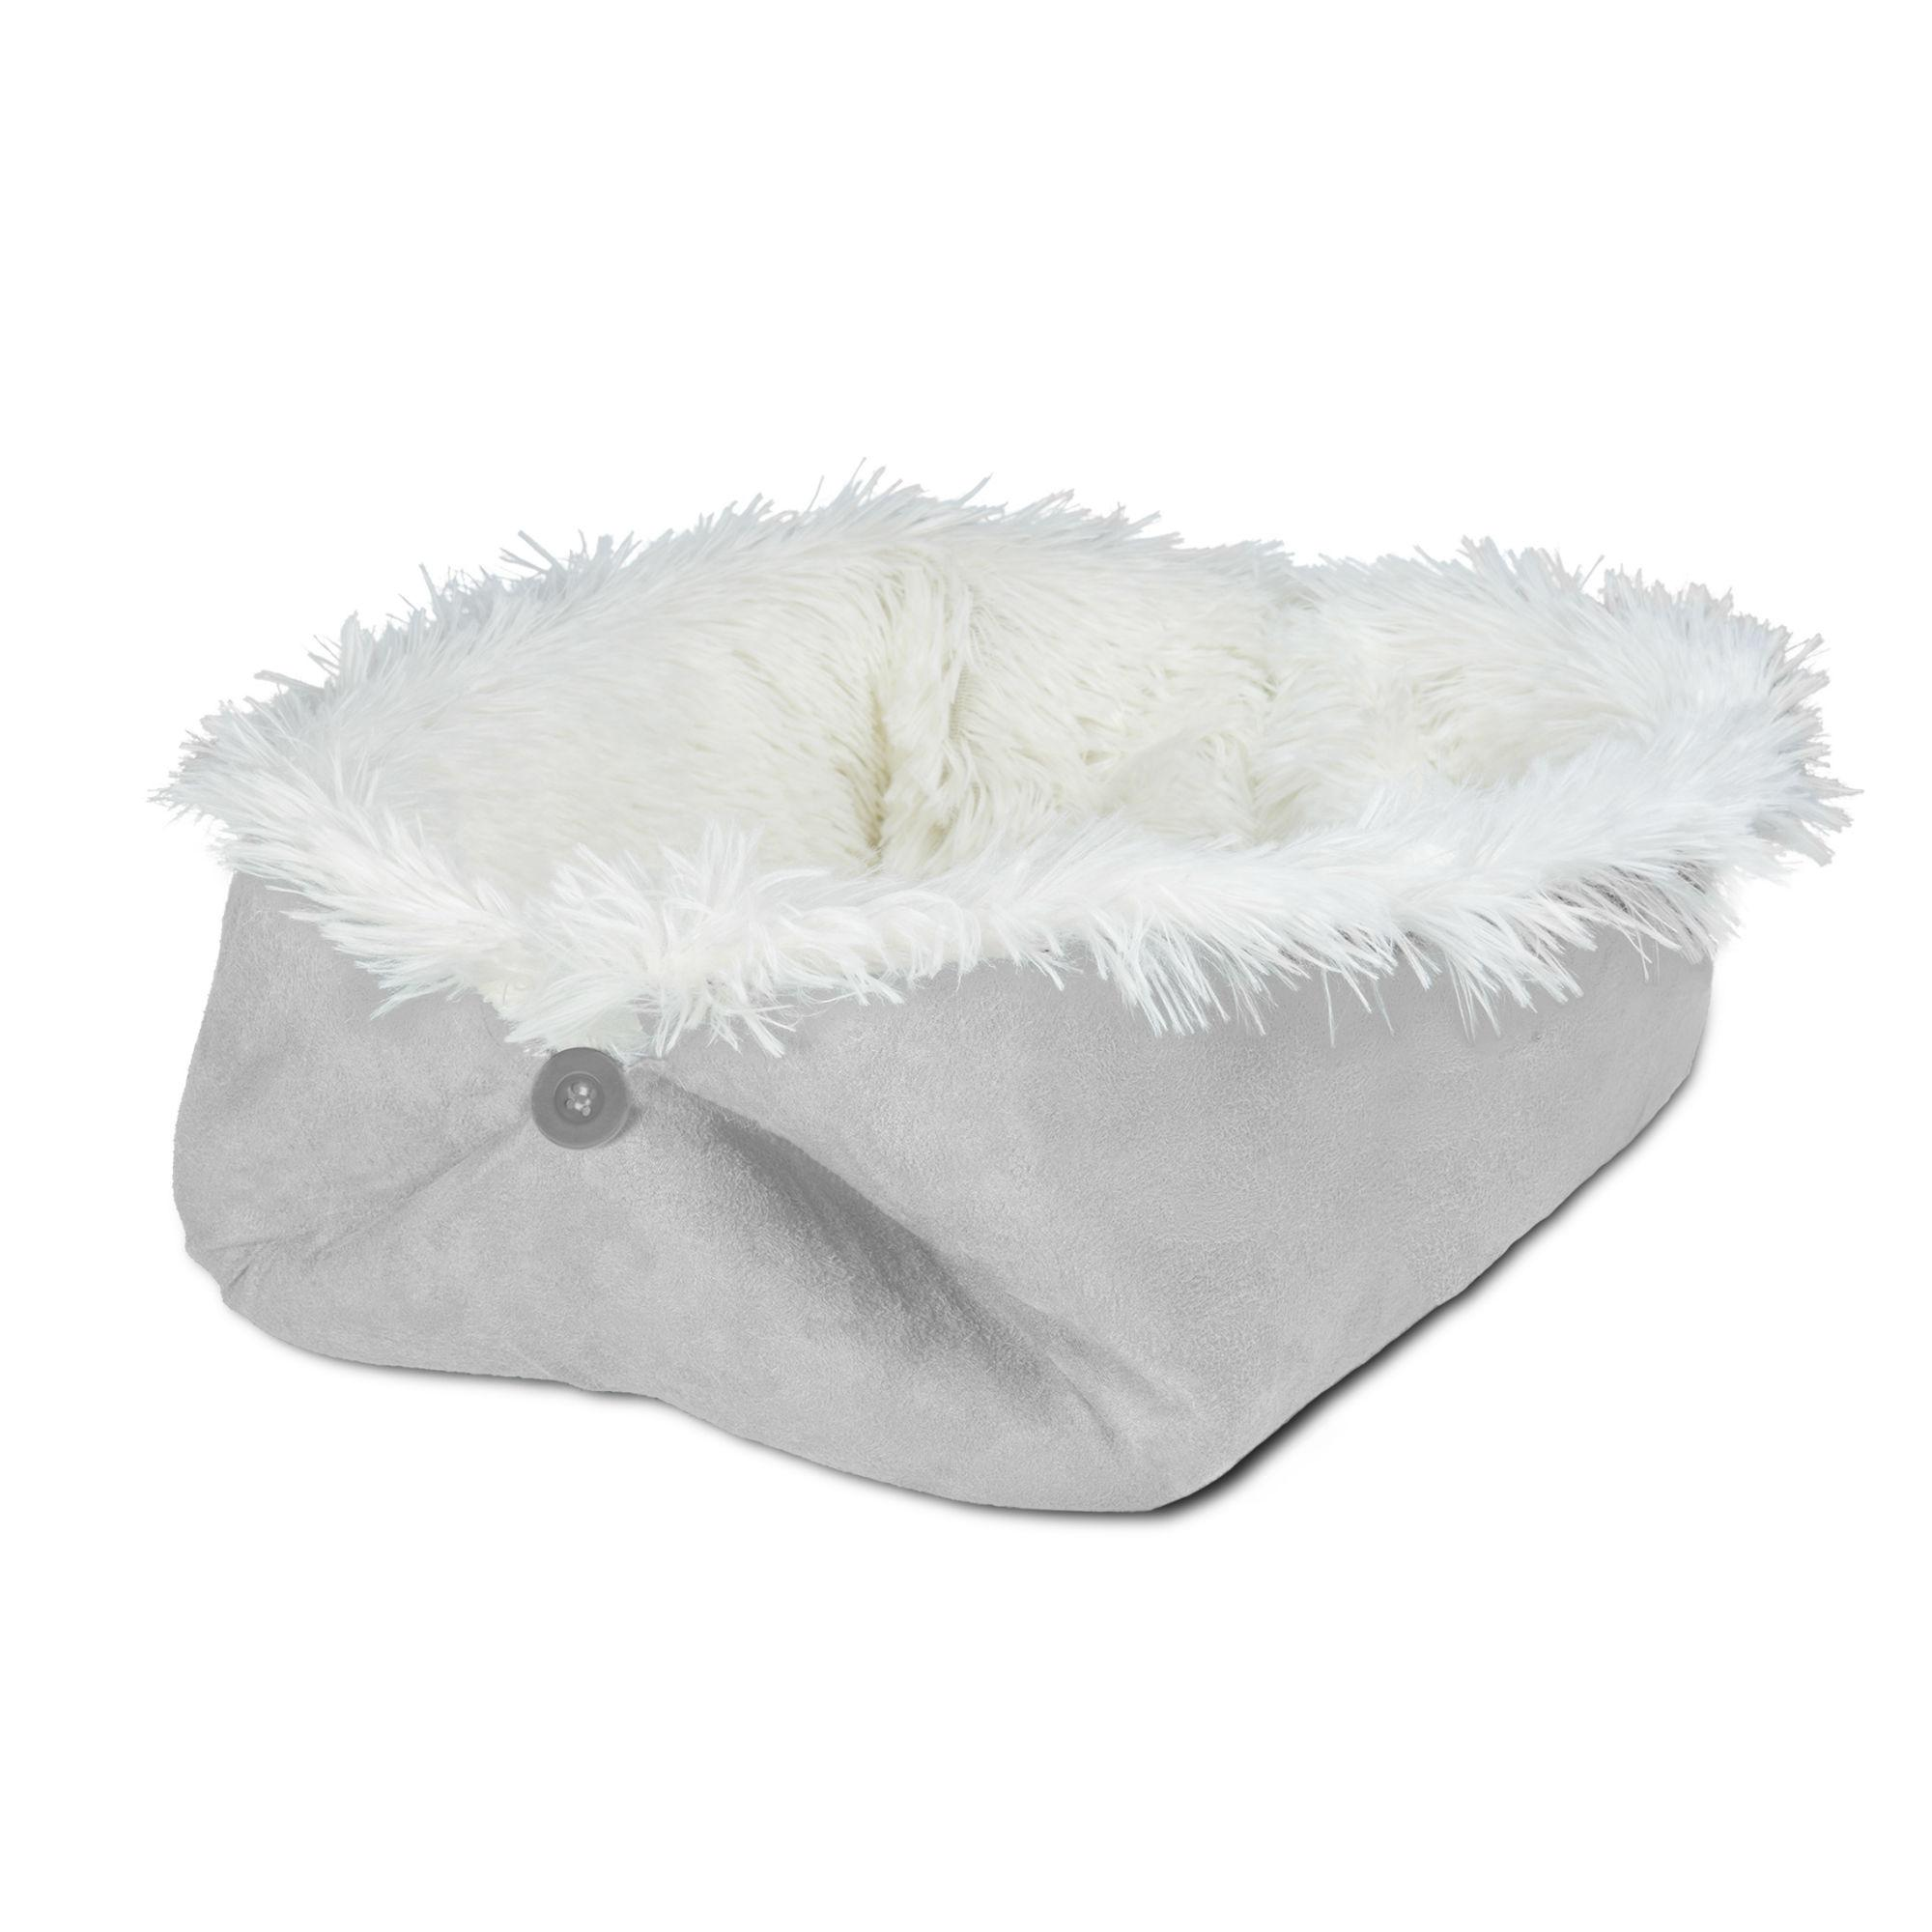 FurHaven Self-Warming Convertible Cuddle Pet Bed & Mat - Silver